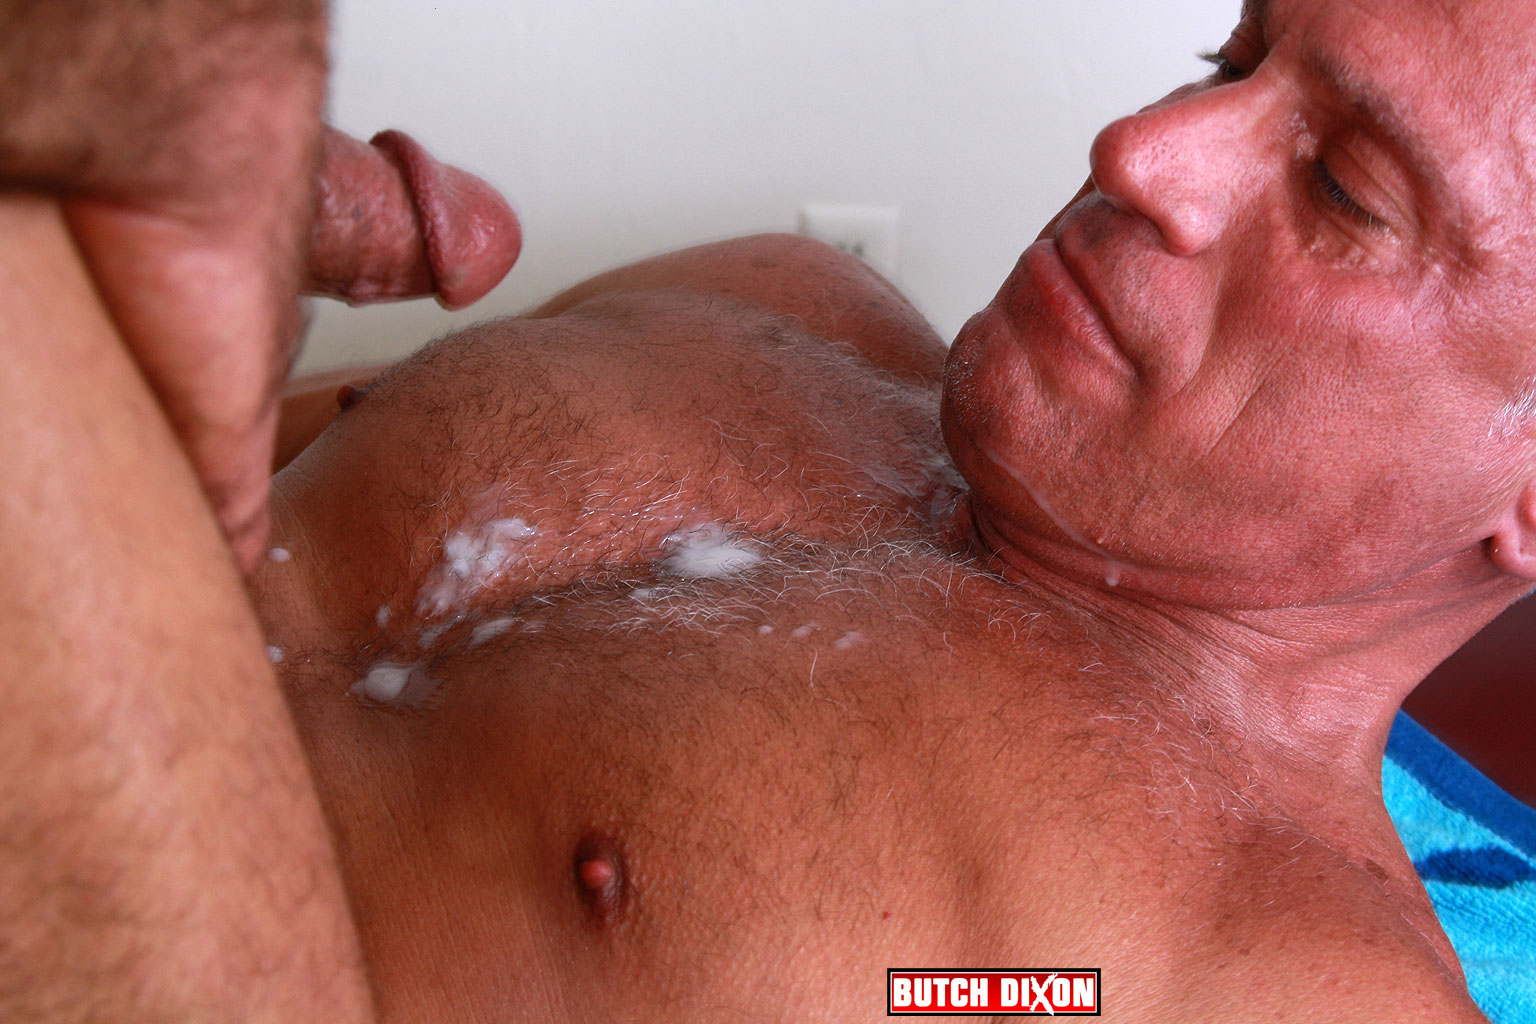 Butch Dixon Jeff Grove and Josh Ford Hairy Daddies Fucking with this Hairy Daddy Cock 15 Jeff Grove and Josh Ford:  Amateur Hairy Daddies Barebacking